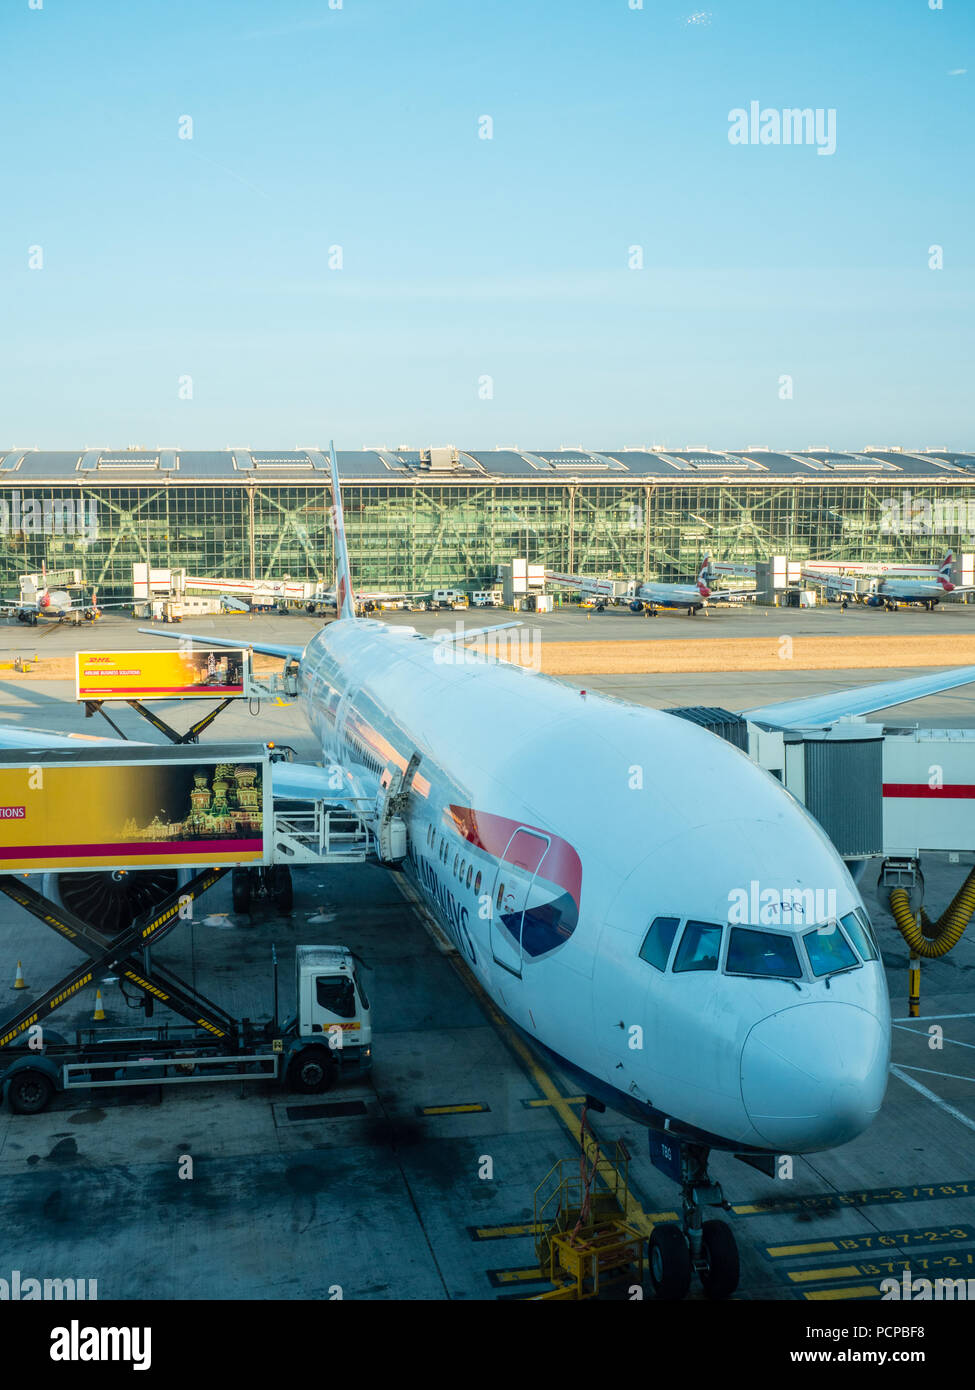 Plane being Serviced, Heathrow Airport, London, UK, GB. - Stock Image